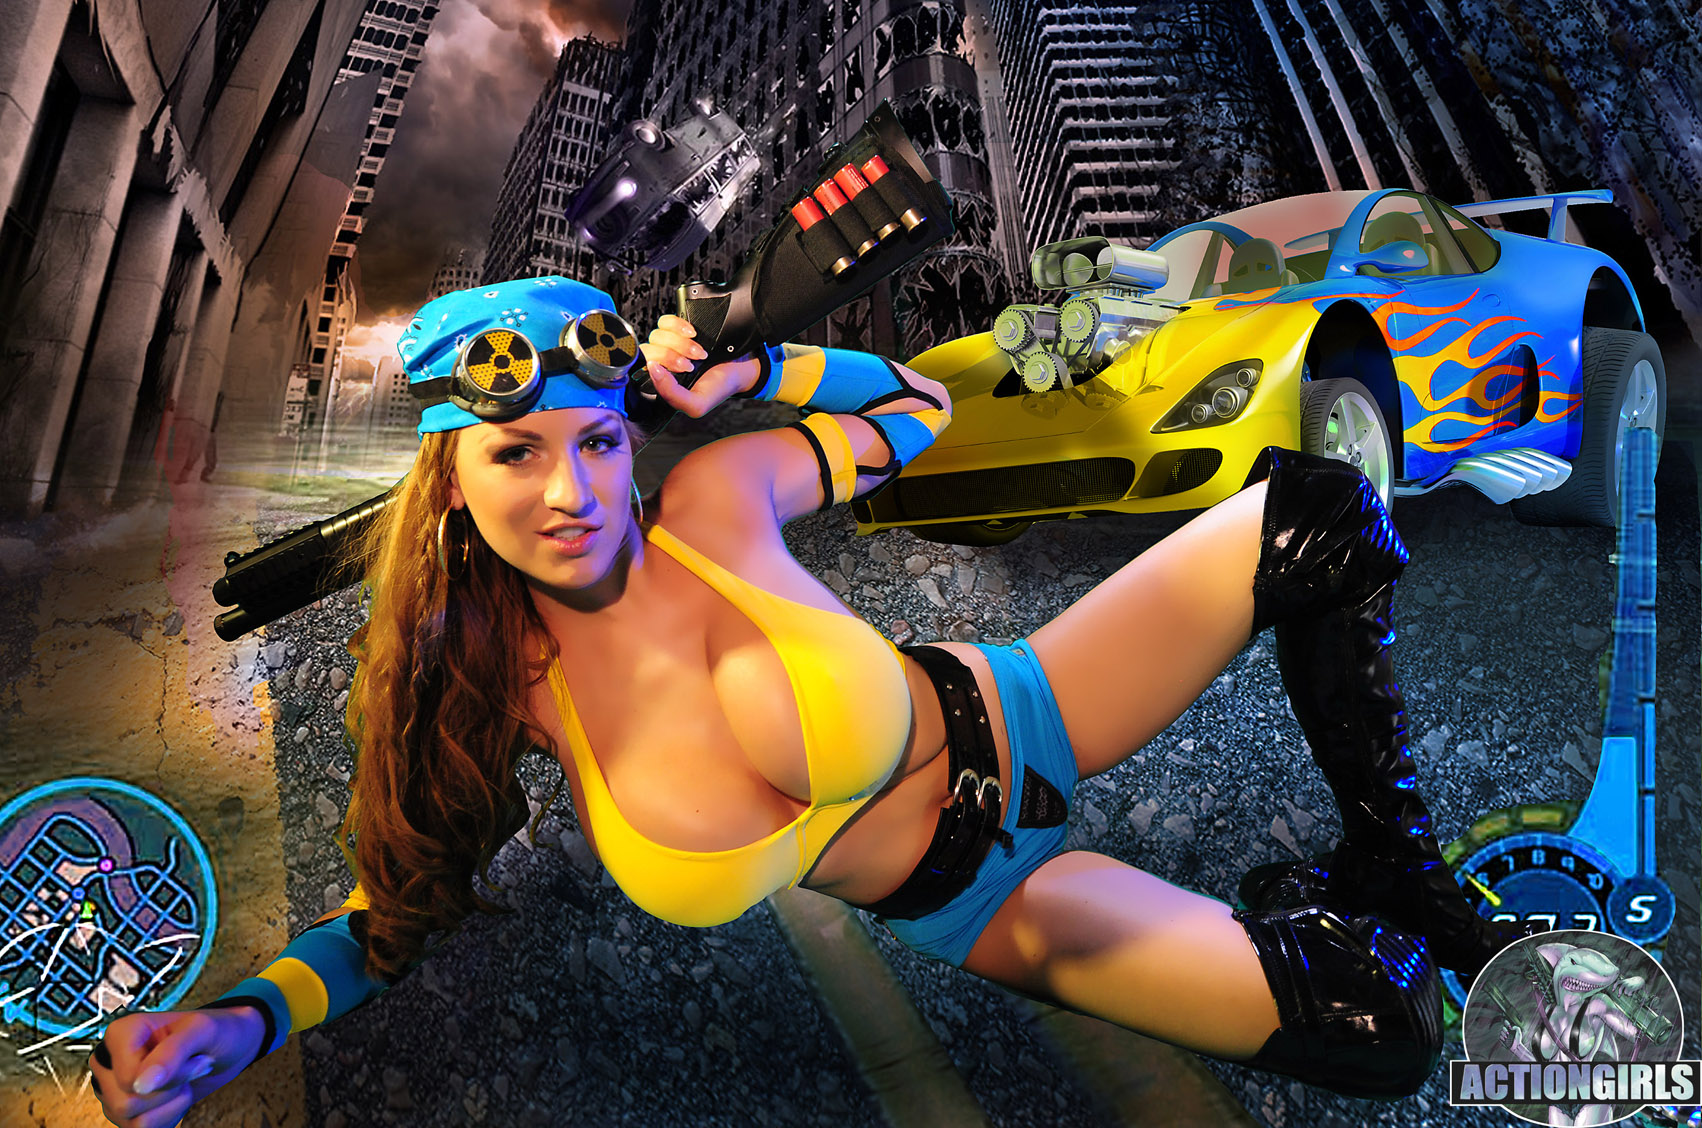 Jordan Carver is Huge Boob Radioactive Girl in Yellow Bikini Top for Actiongirls